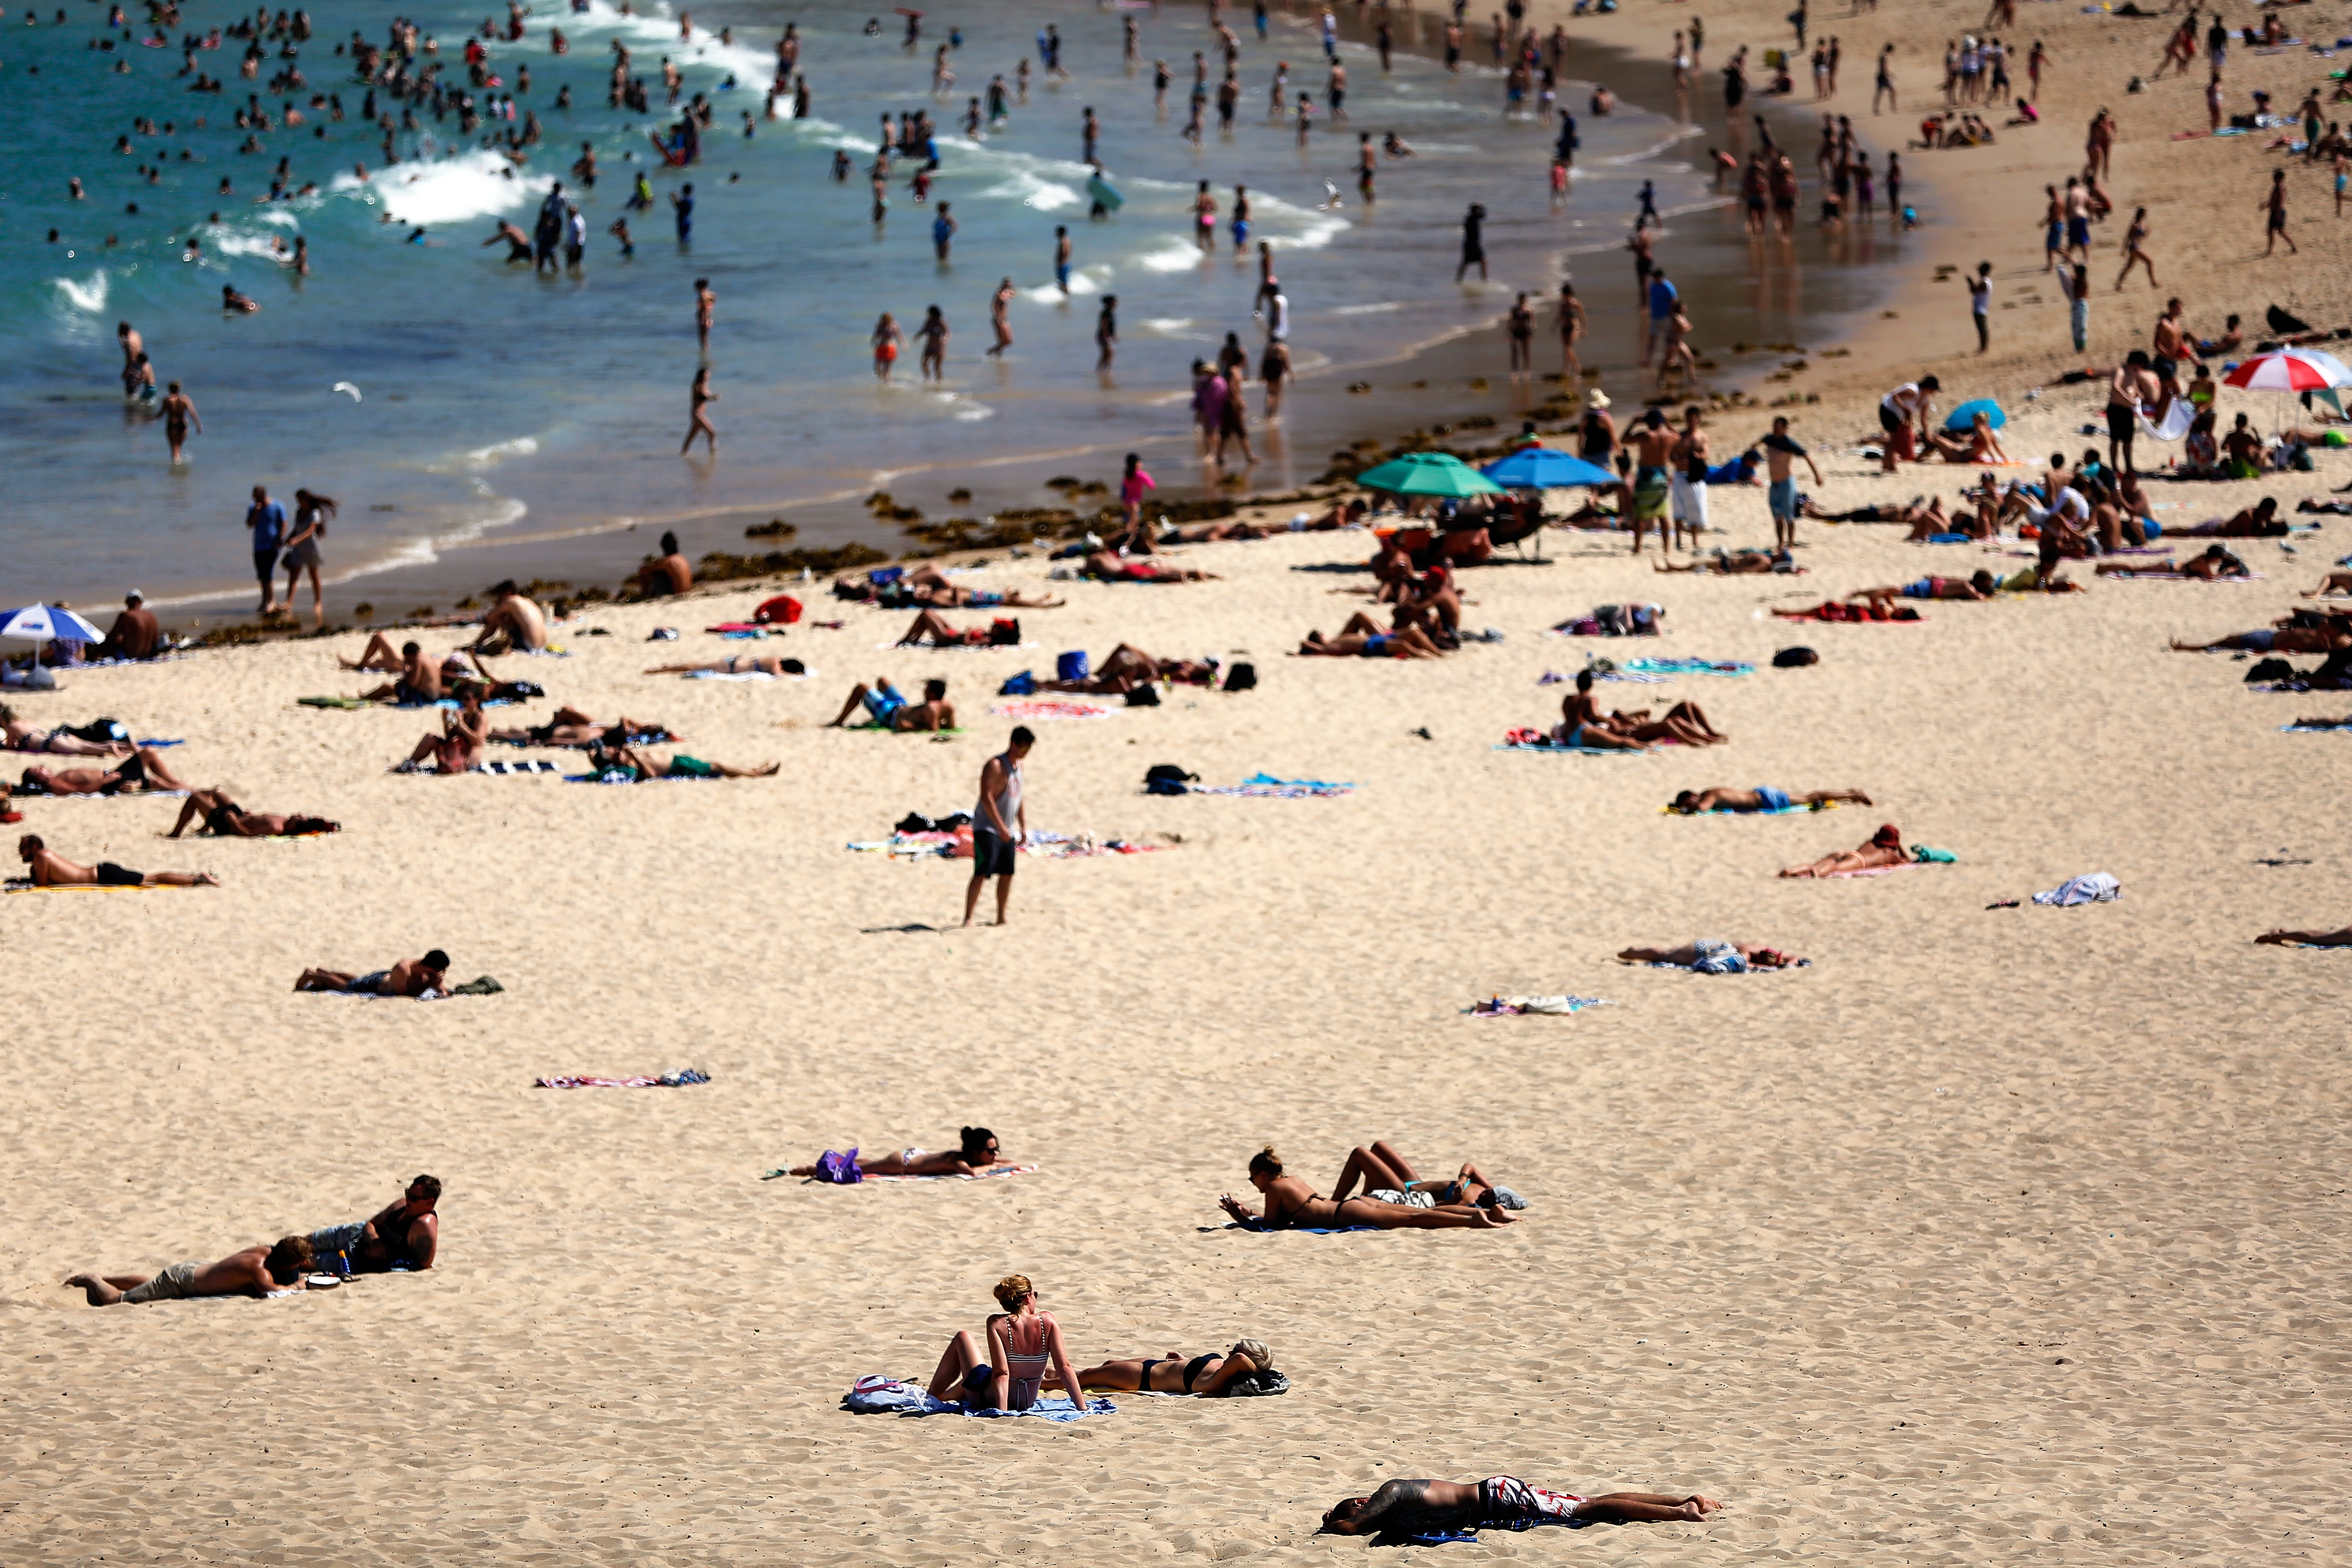 Beachgoers enjoy the hot weather at Coogee Beach on Jan. 13, 2016 in Sydney.